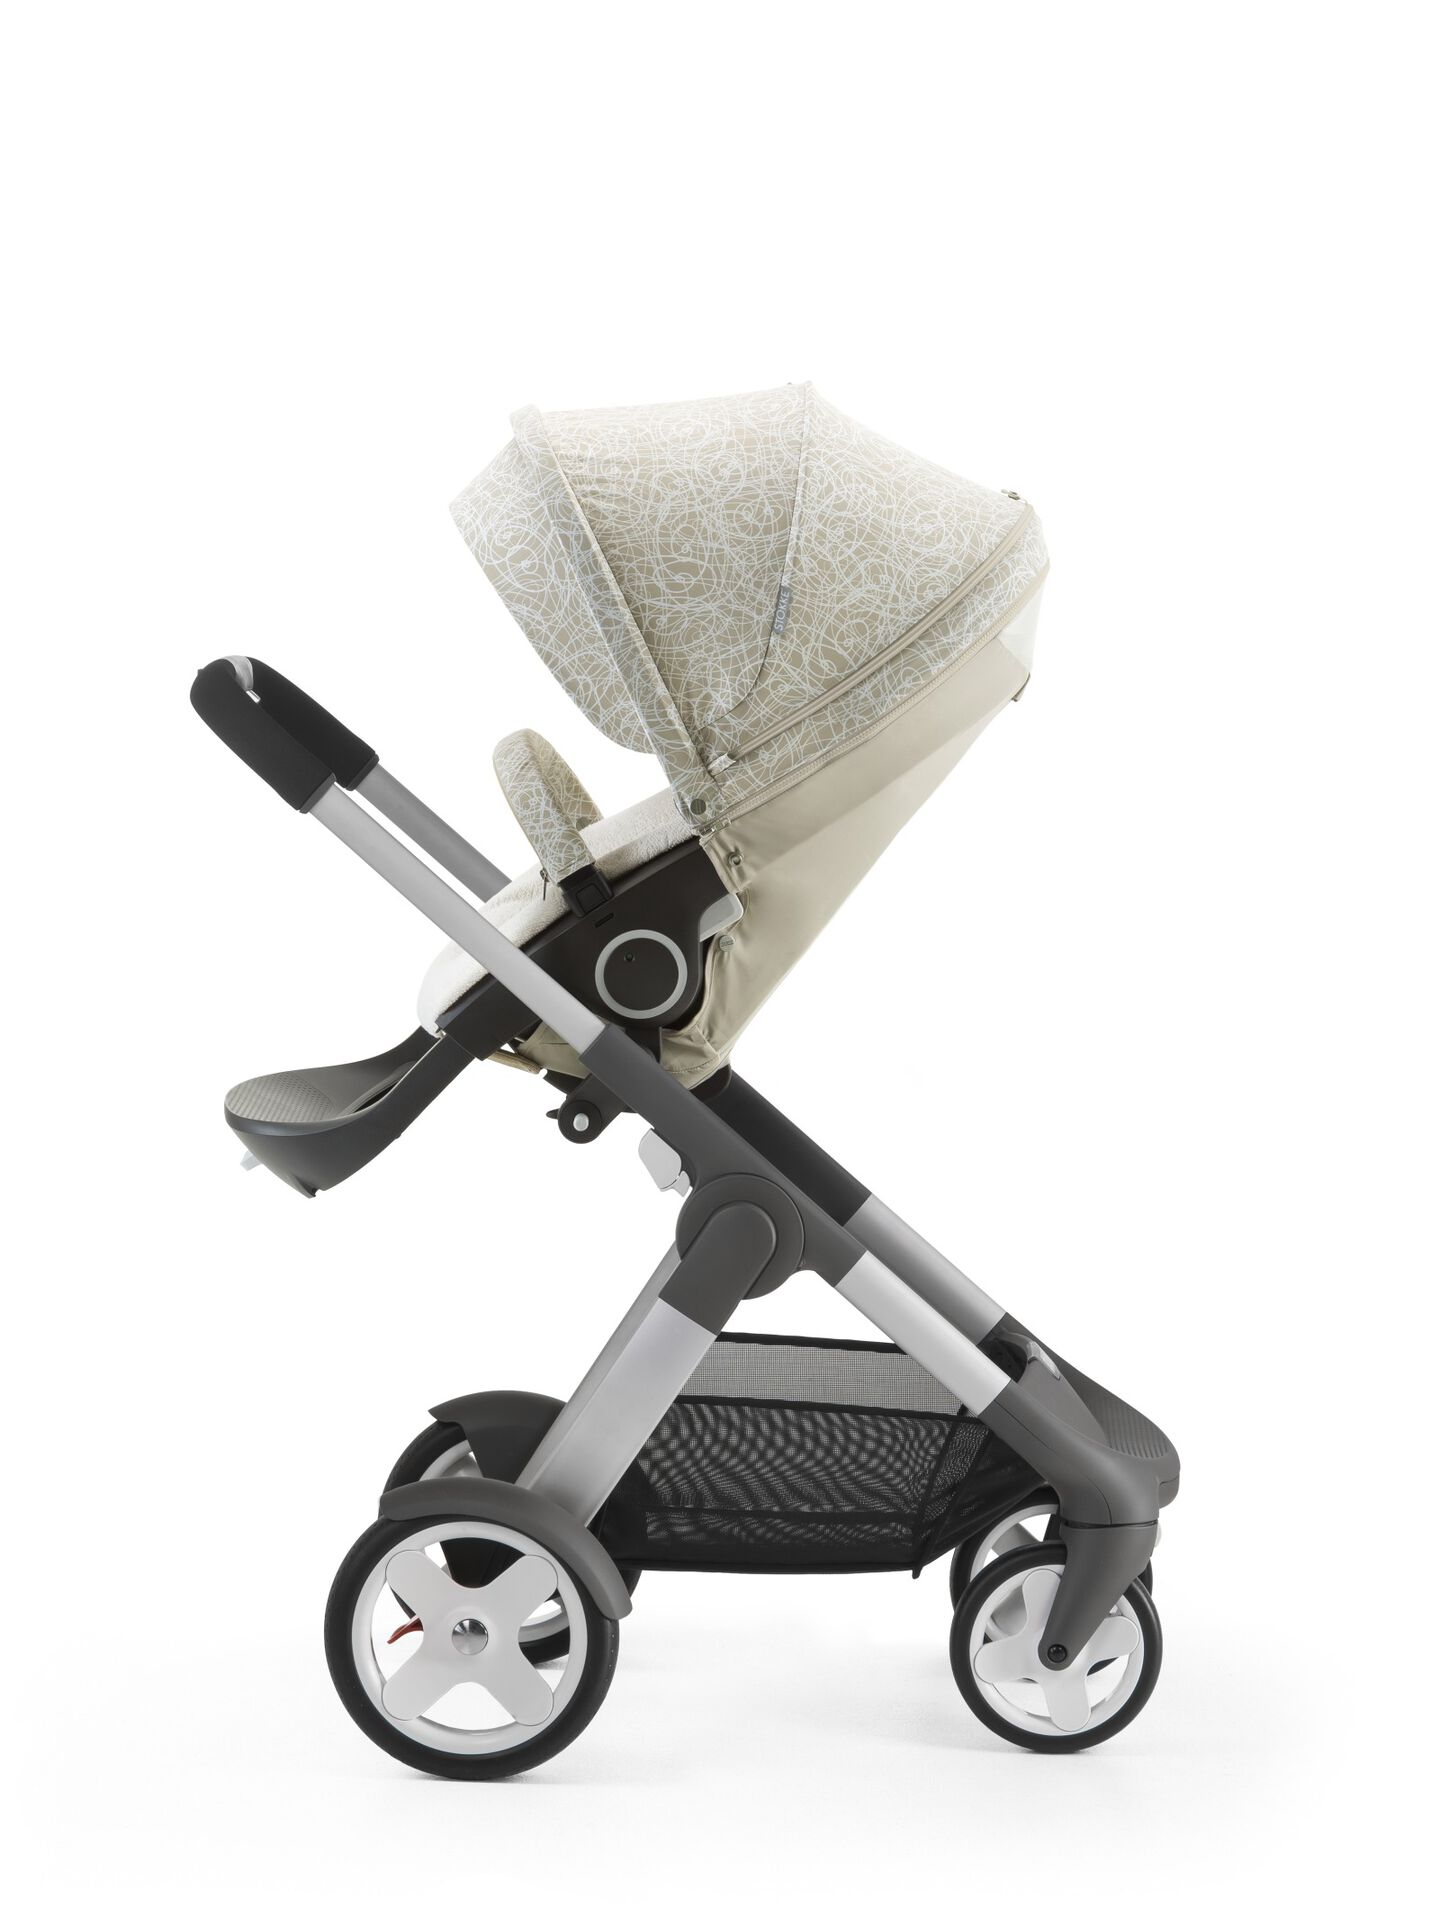 Stokke® Crusi™ with Stokke® Stroller Summer Kit Scribble Sandy Beige.